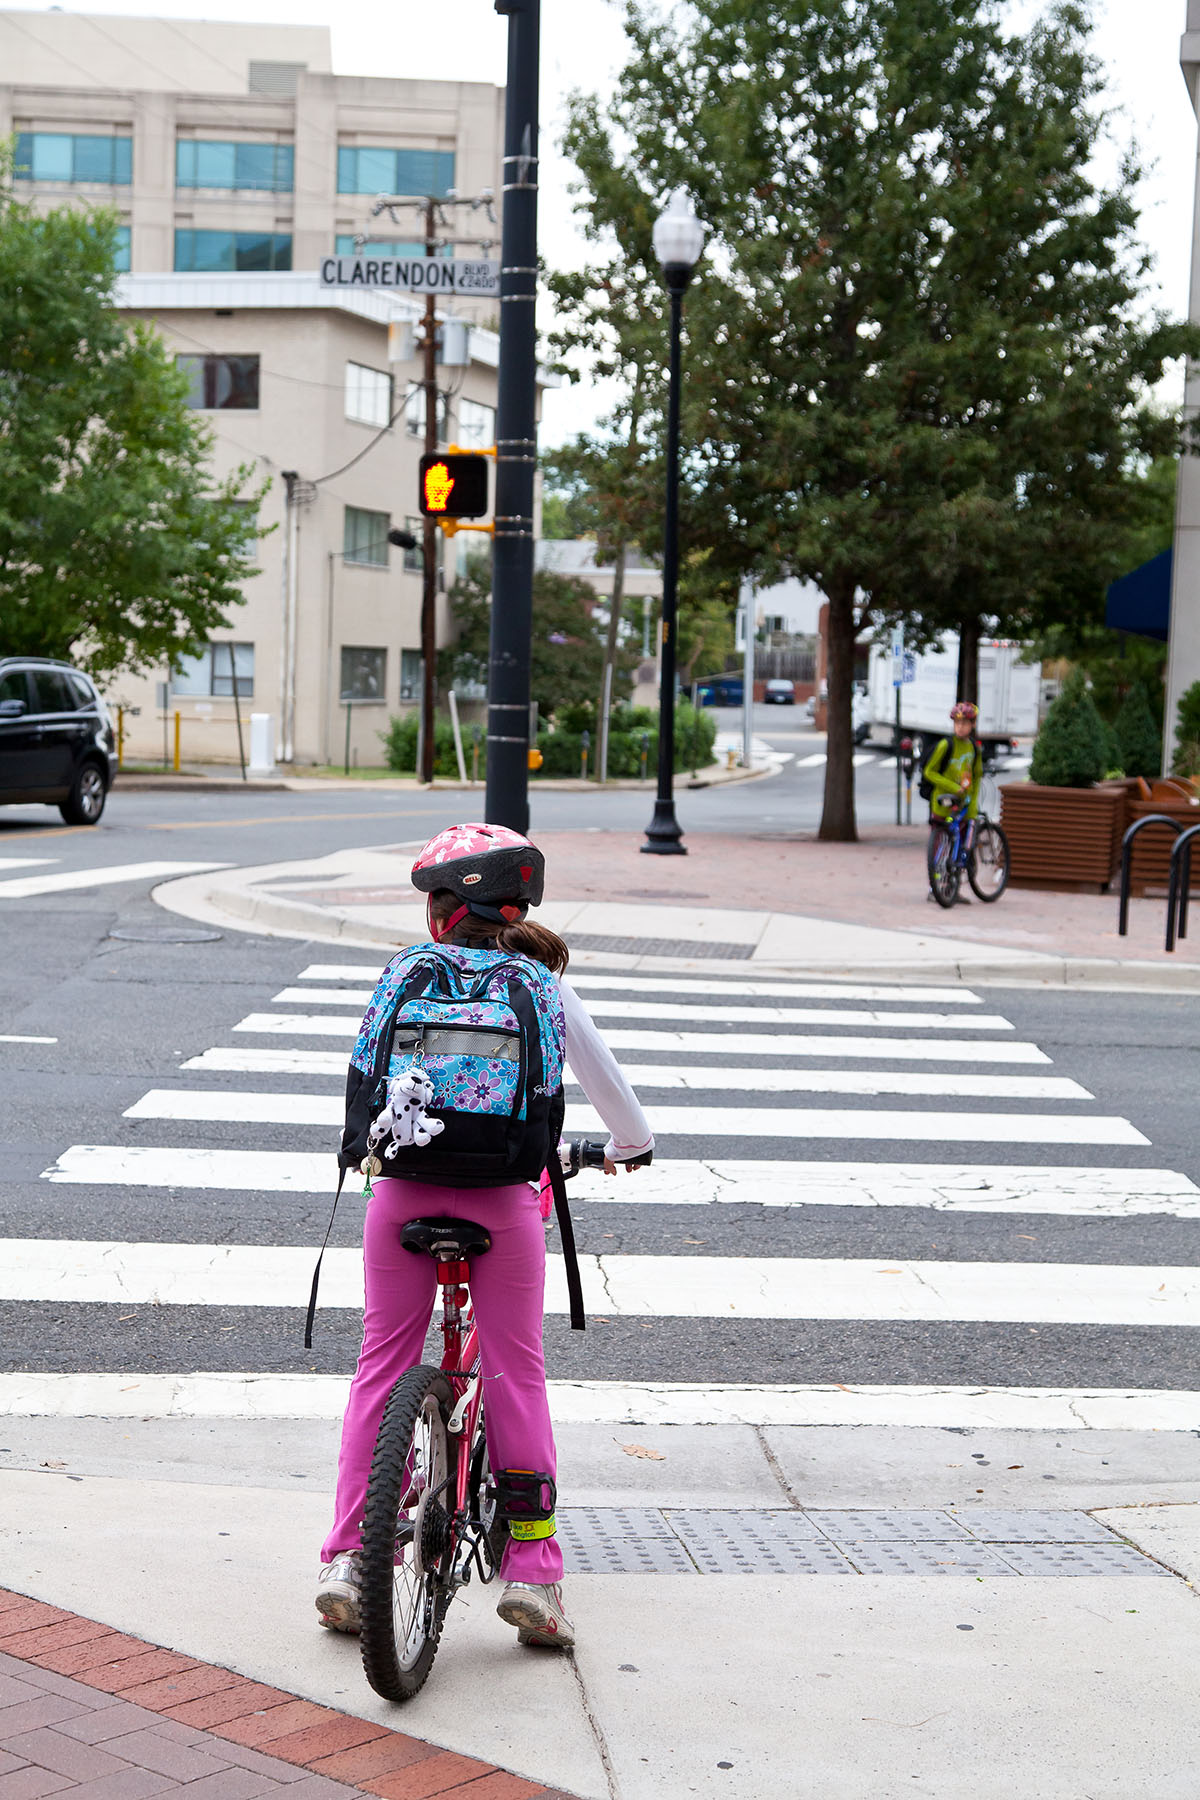 Safely walking and riding a bicycle to school